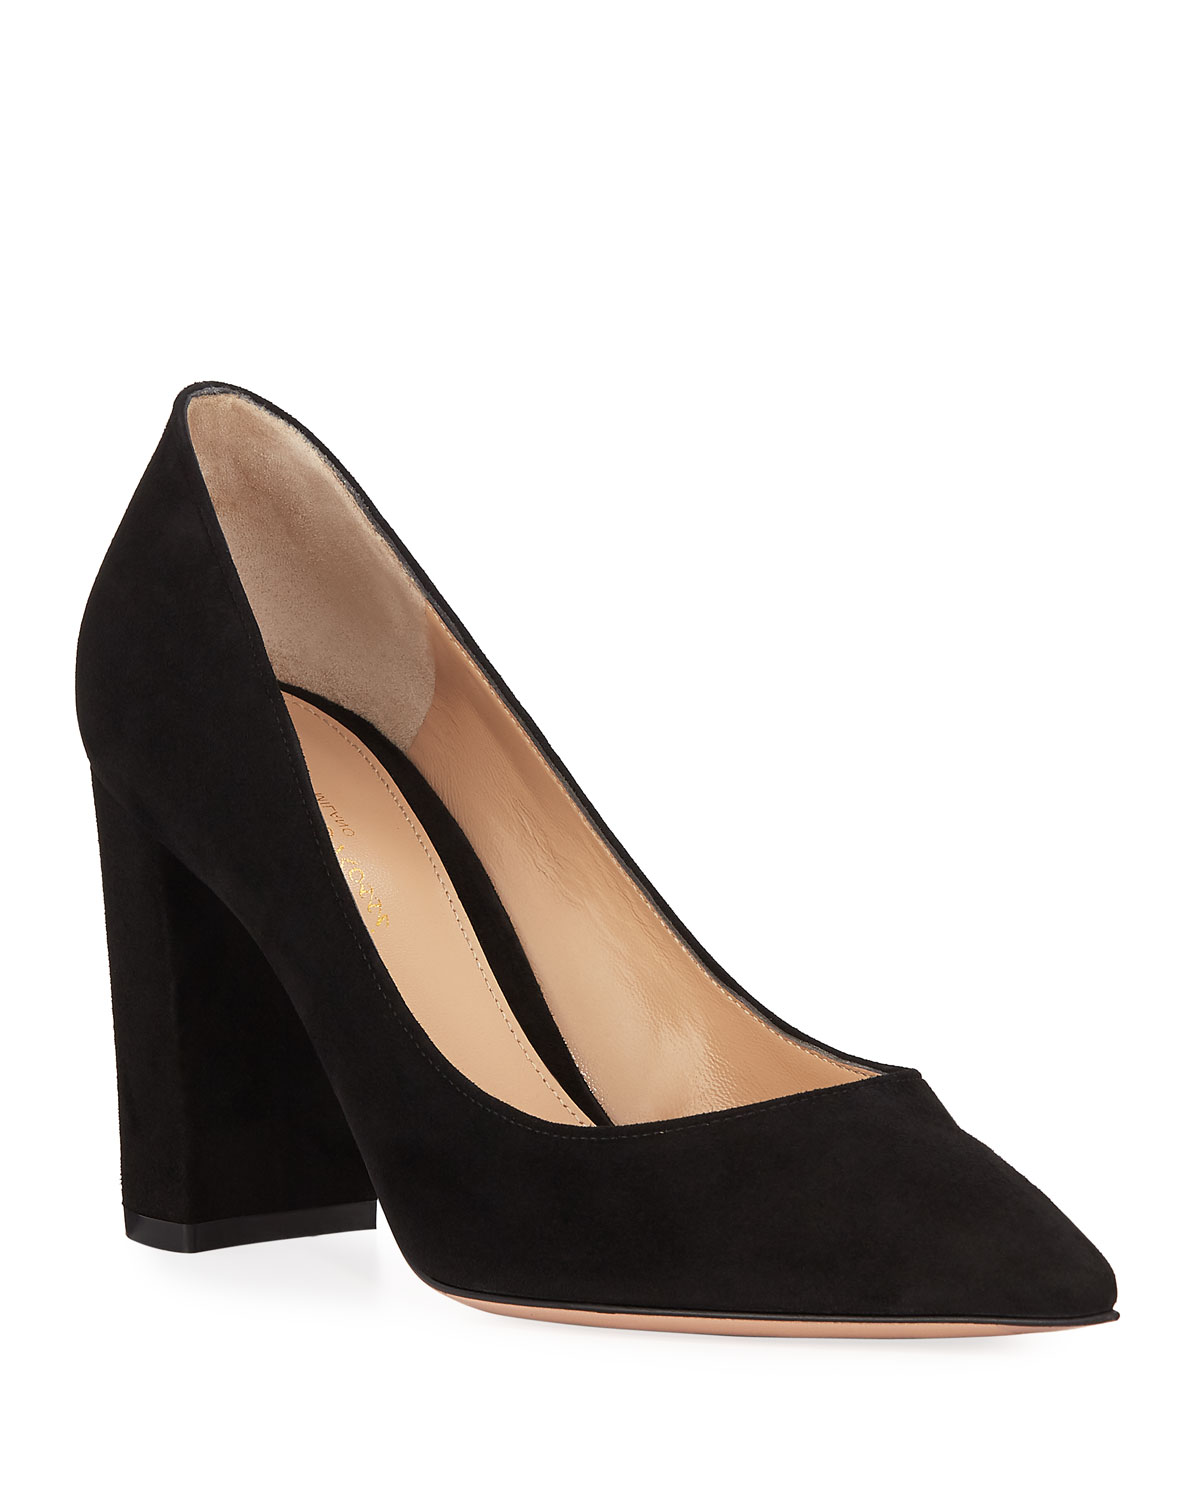 Exact Product: Suede Pointed-Toe Pumps with Chunky Hee, Brand: Gianvito Rossi, Available on: neimanmarcus.com, Price: $695